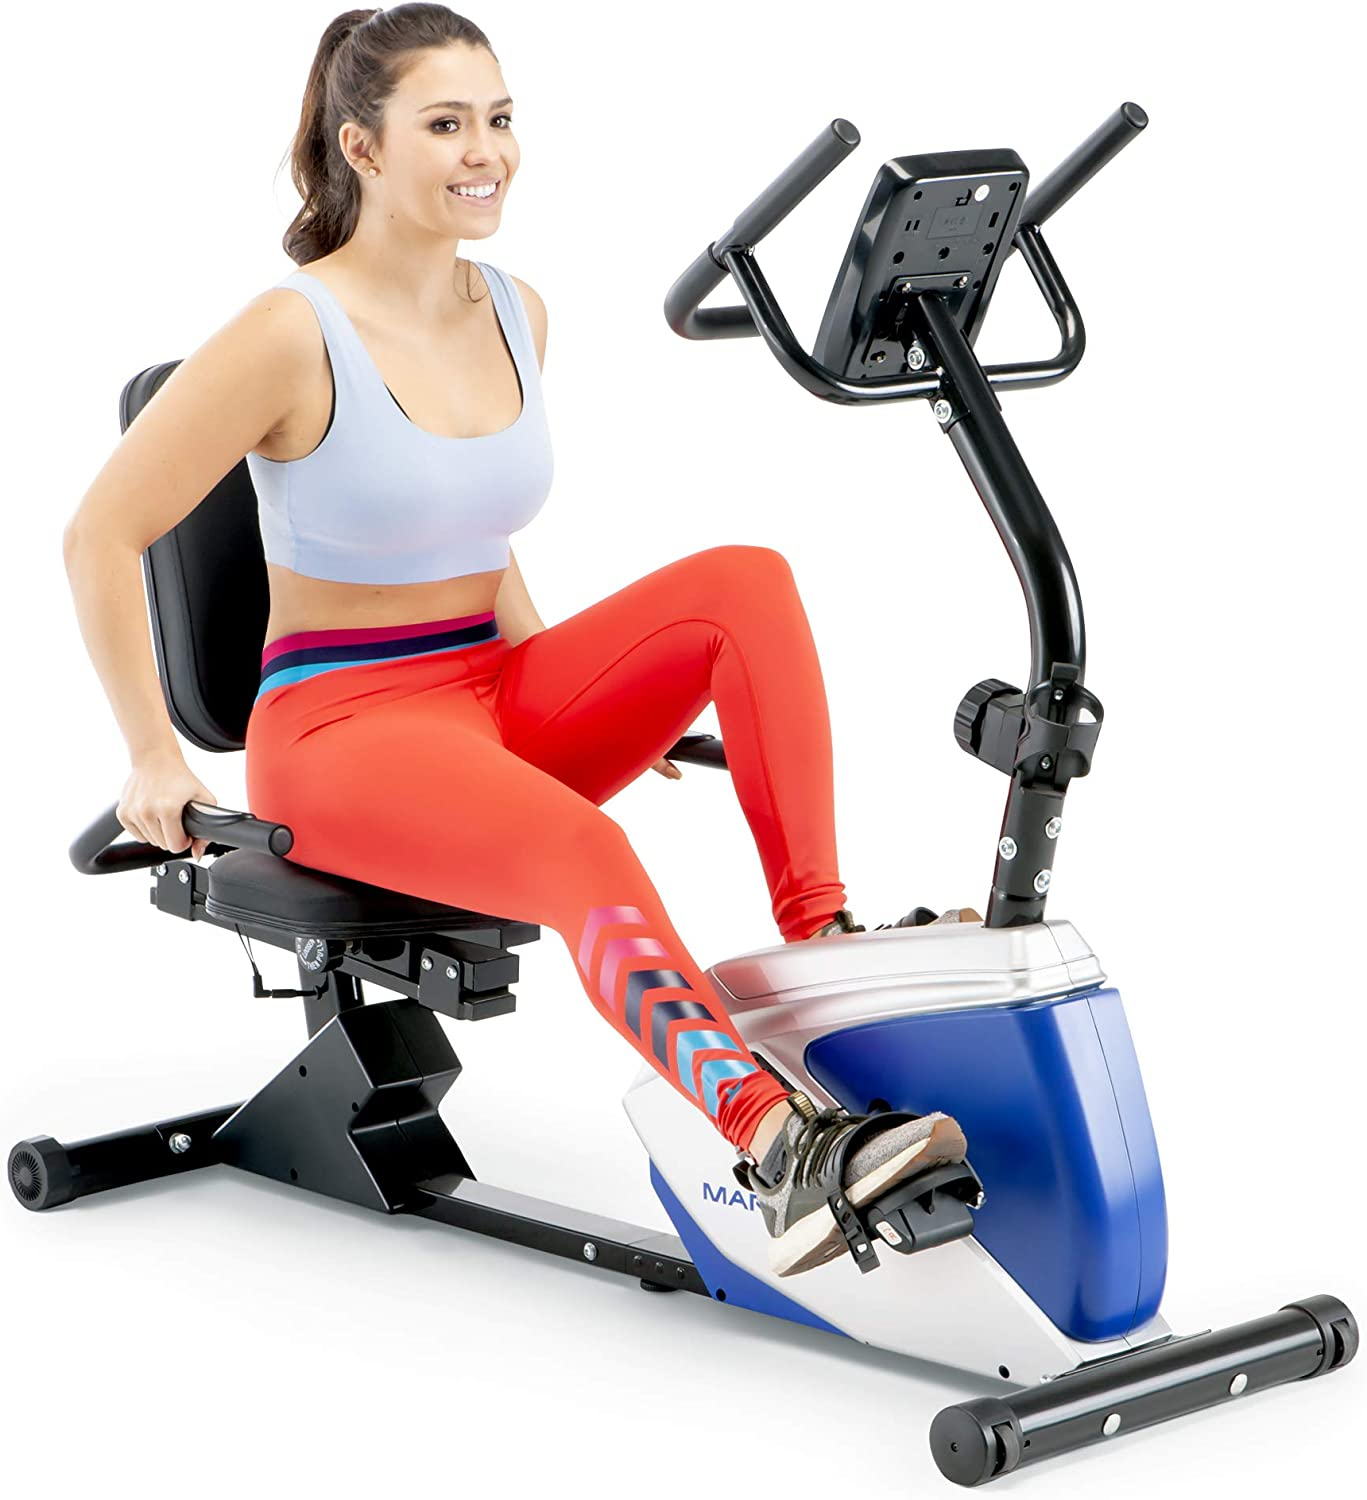 Marcy ME-1019R Magnetic Recumbent Exercise Bike with 8 Resistance Levels